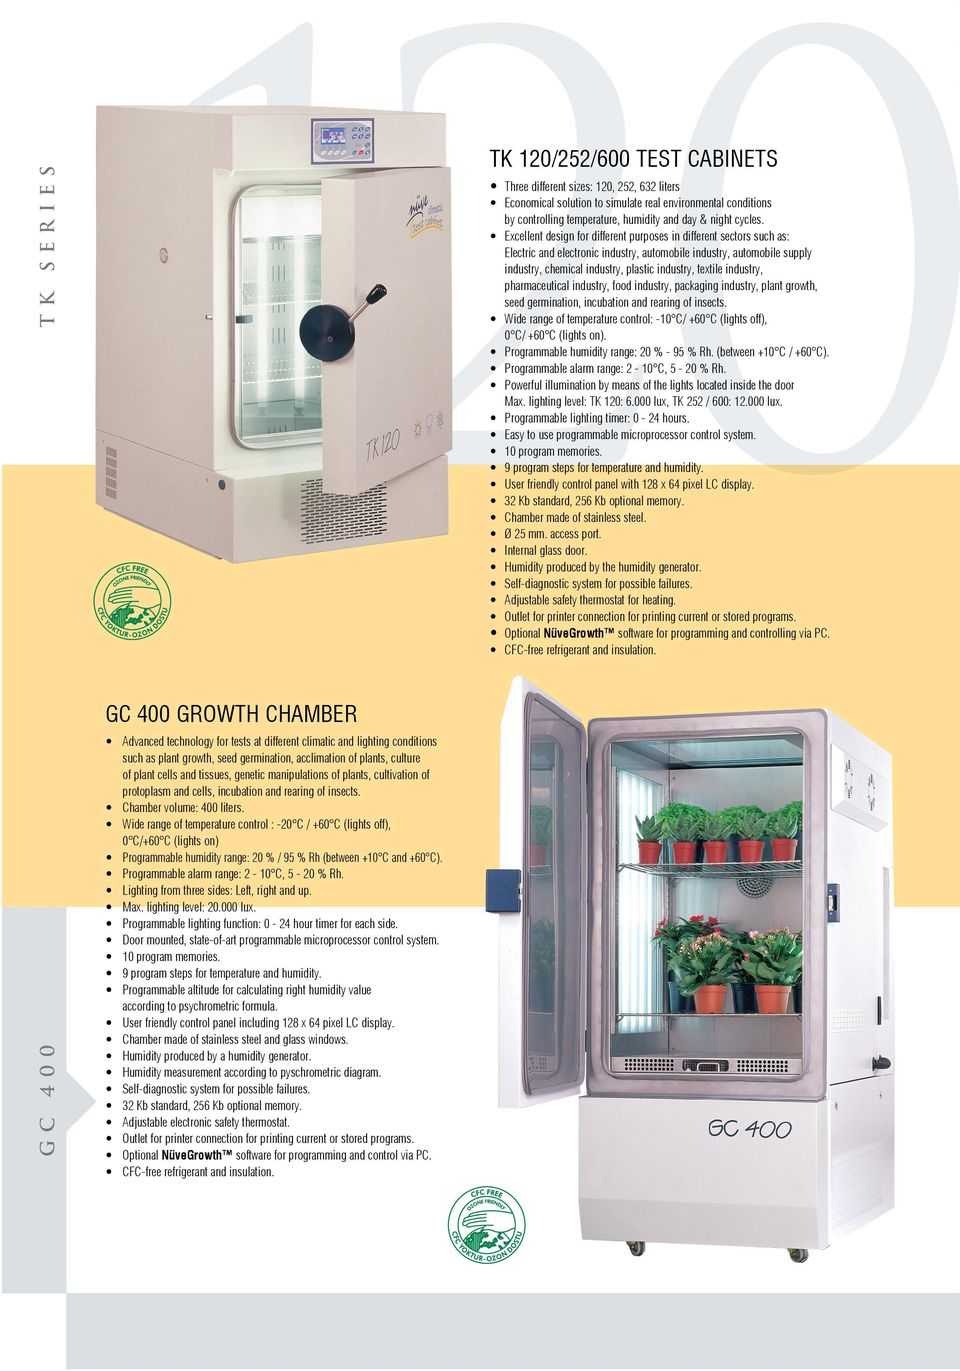 industry, pharmaceutical industry, food industry, packaging industry, plant growth, seed germination, incubation and rearing of insects.